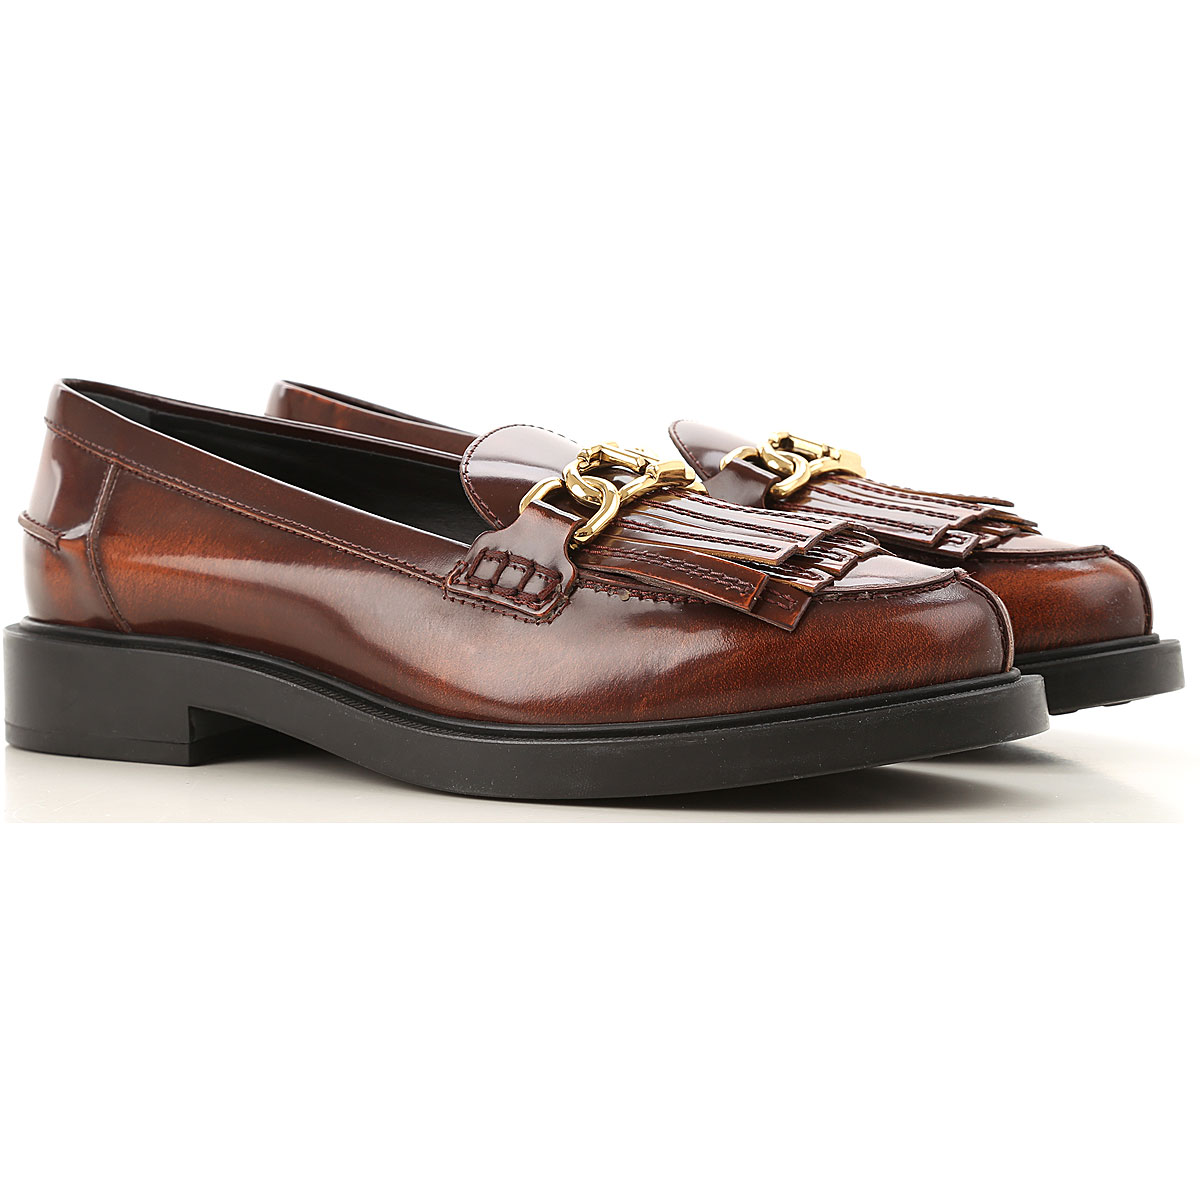 Tods Loafers for Women Red USA - GOOFASH